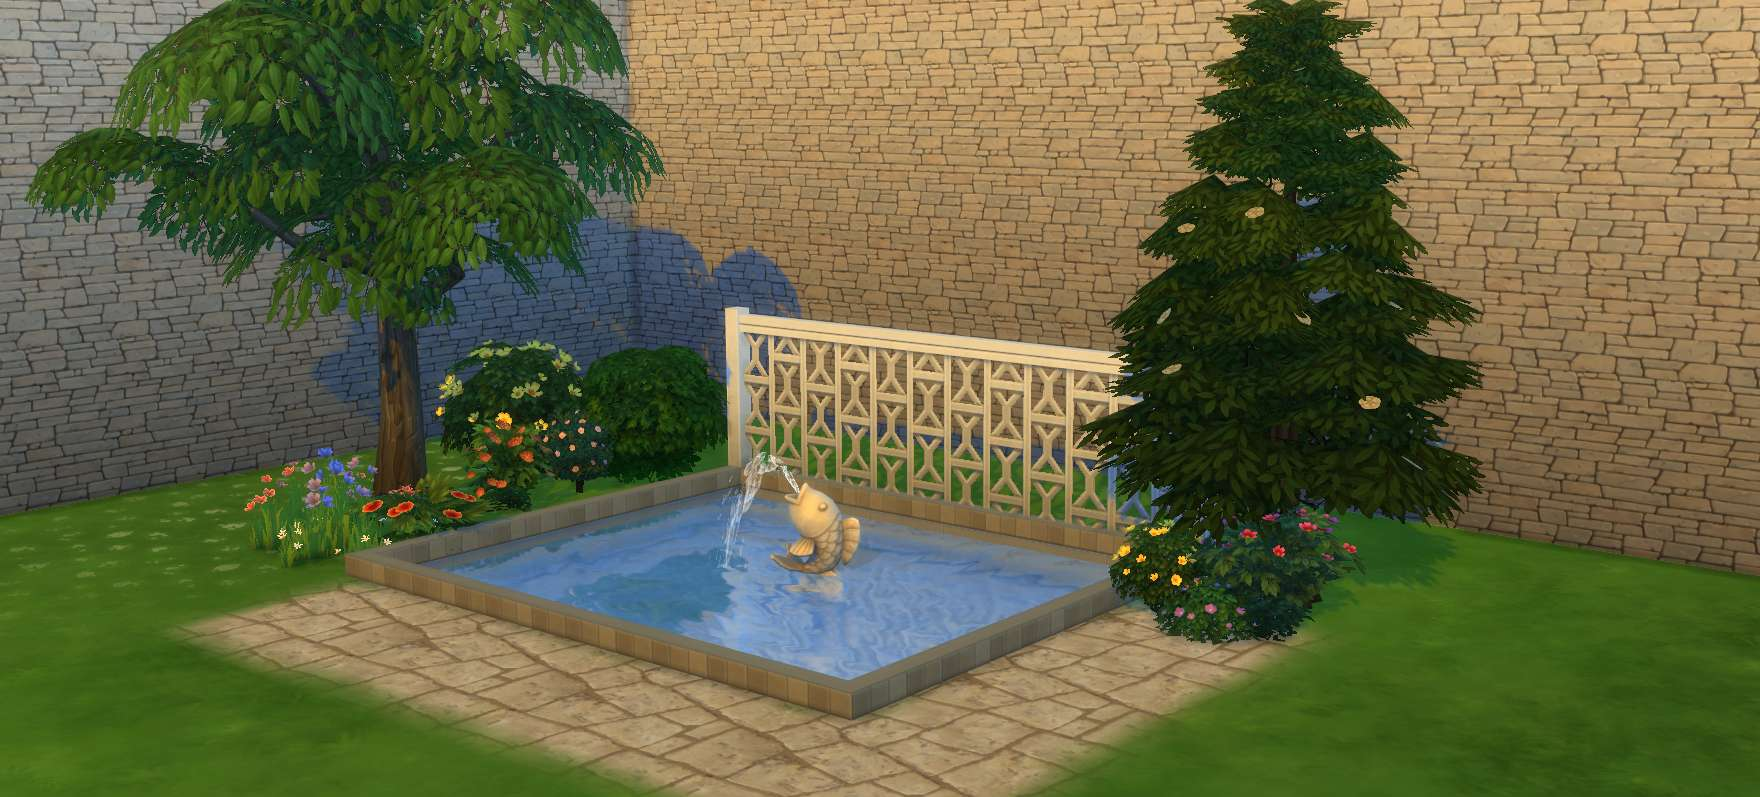 Pool Bauen Sims 4 The Sims 4 Building Landscaping Pools Indoor Outdoor